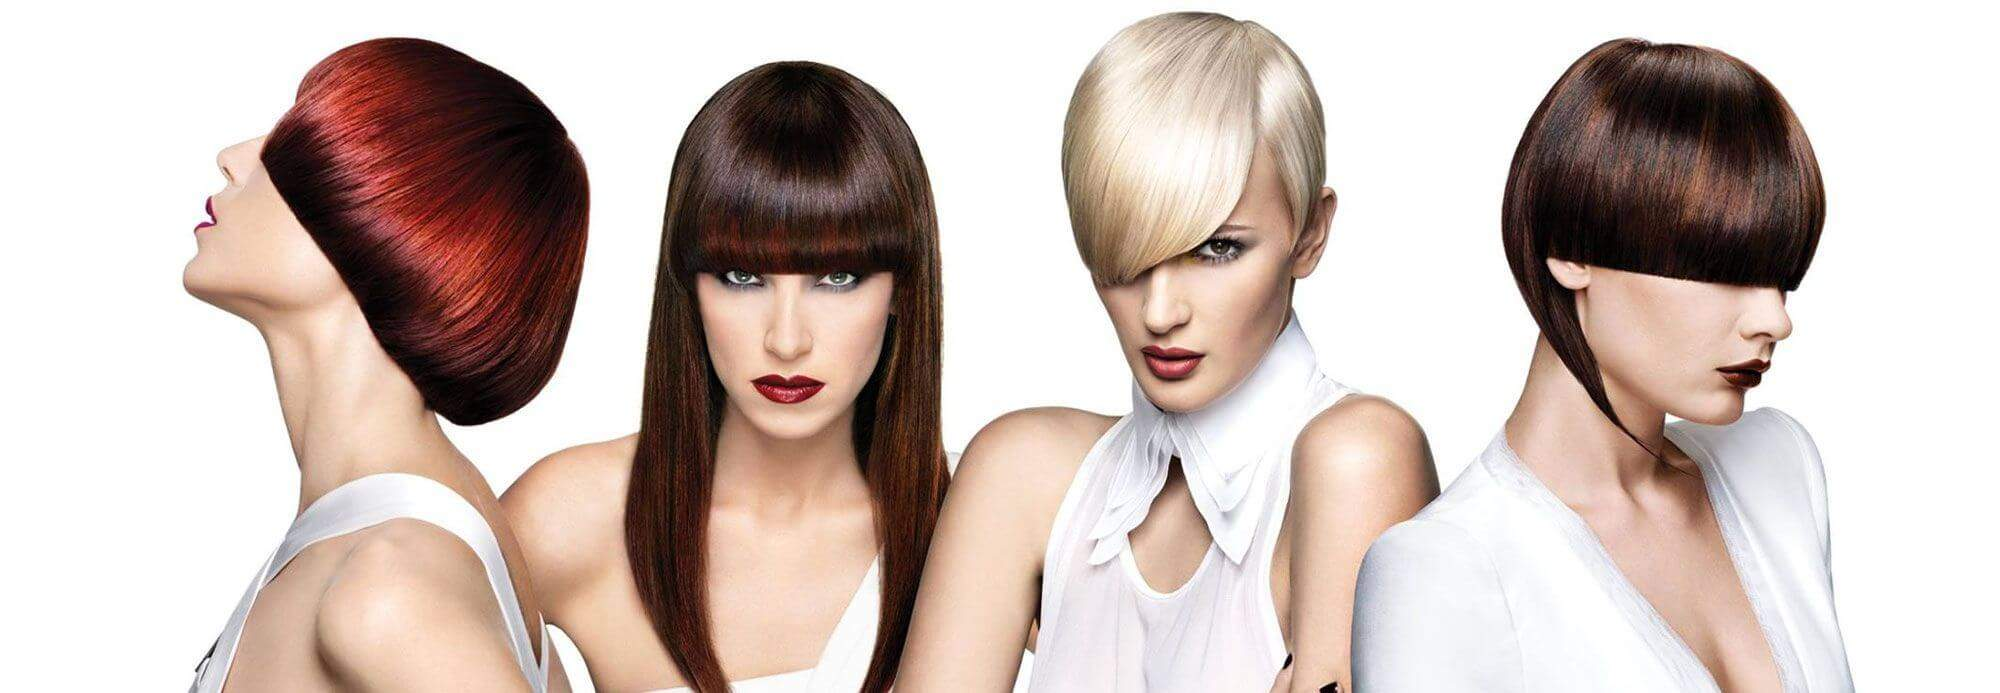 Europa Hair Studio Best Hair Salon In Miami